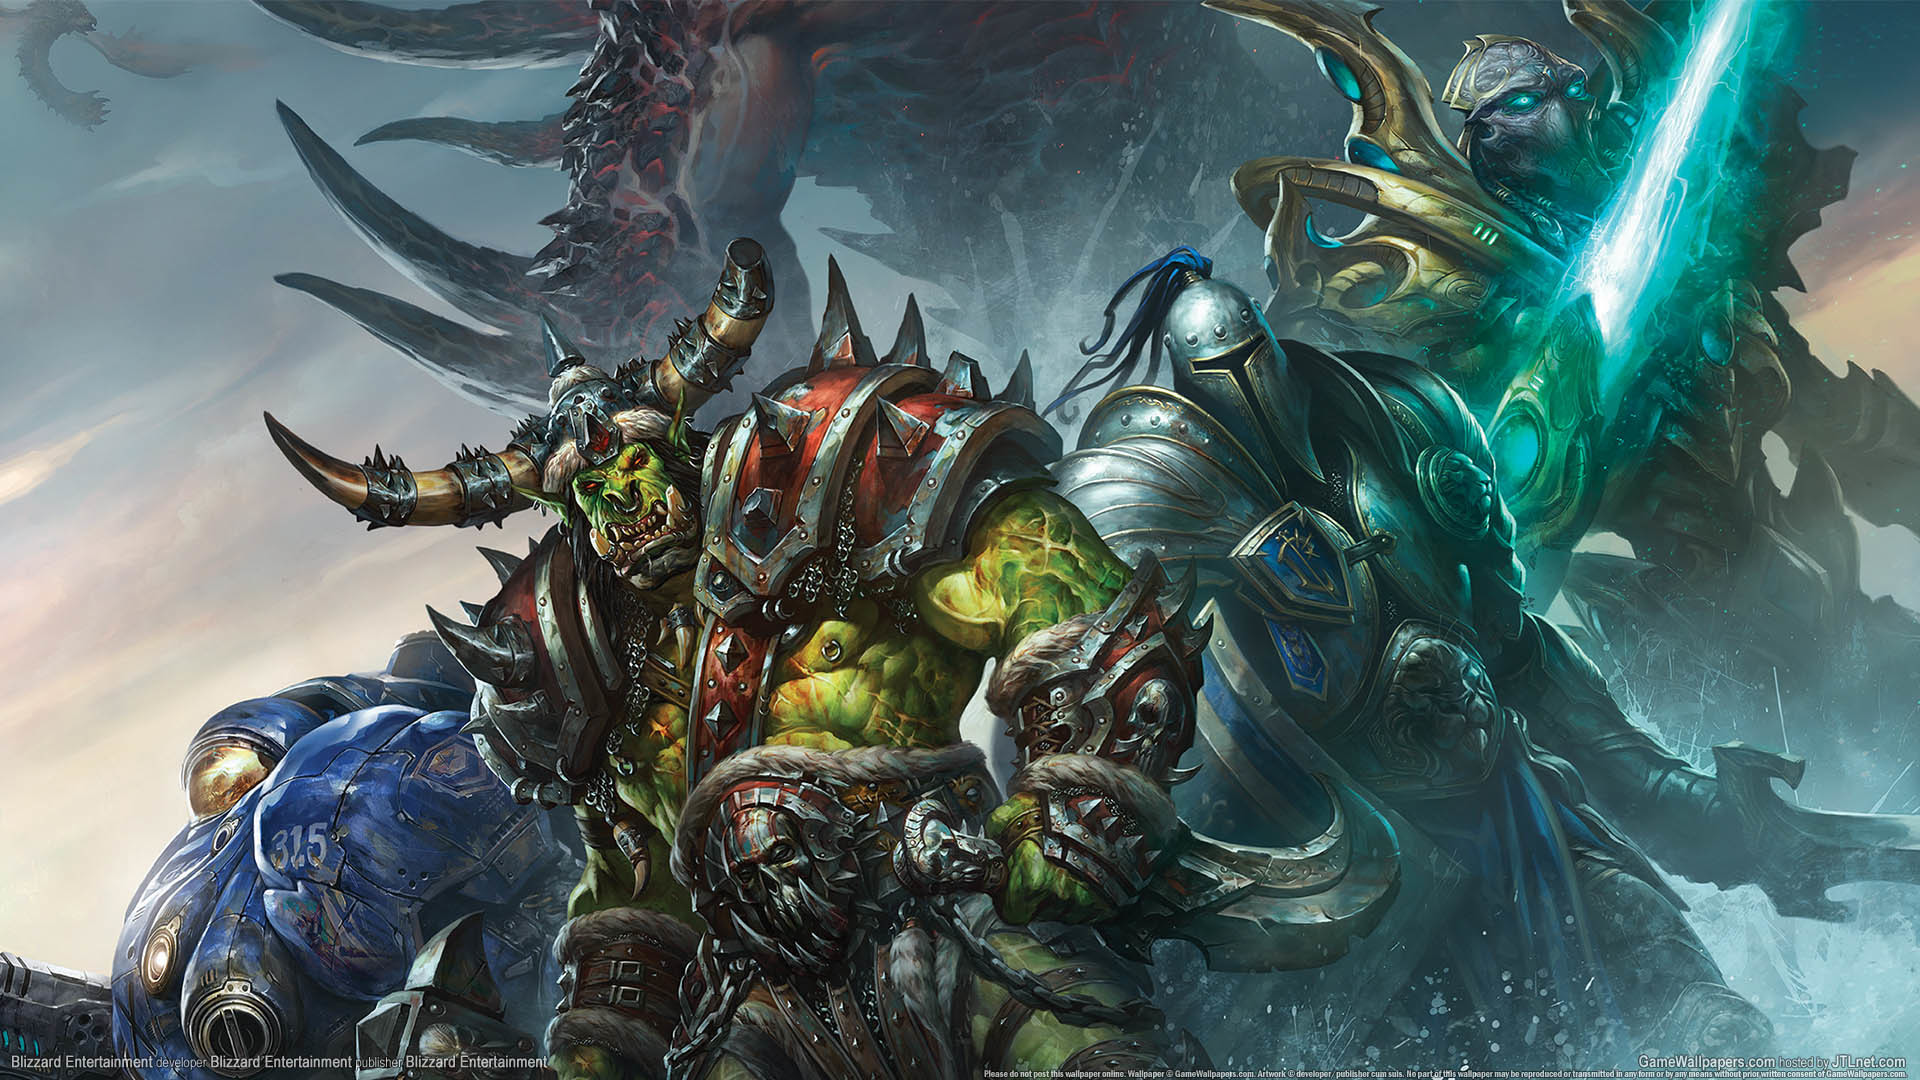 Res: 1920x1080, Blizzard Entertainment wallpaper or background Blizzard Entertainment  wallpaper or background 01